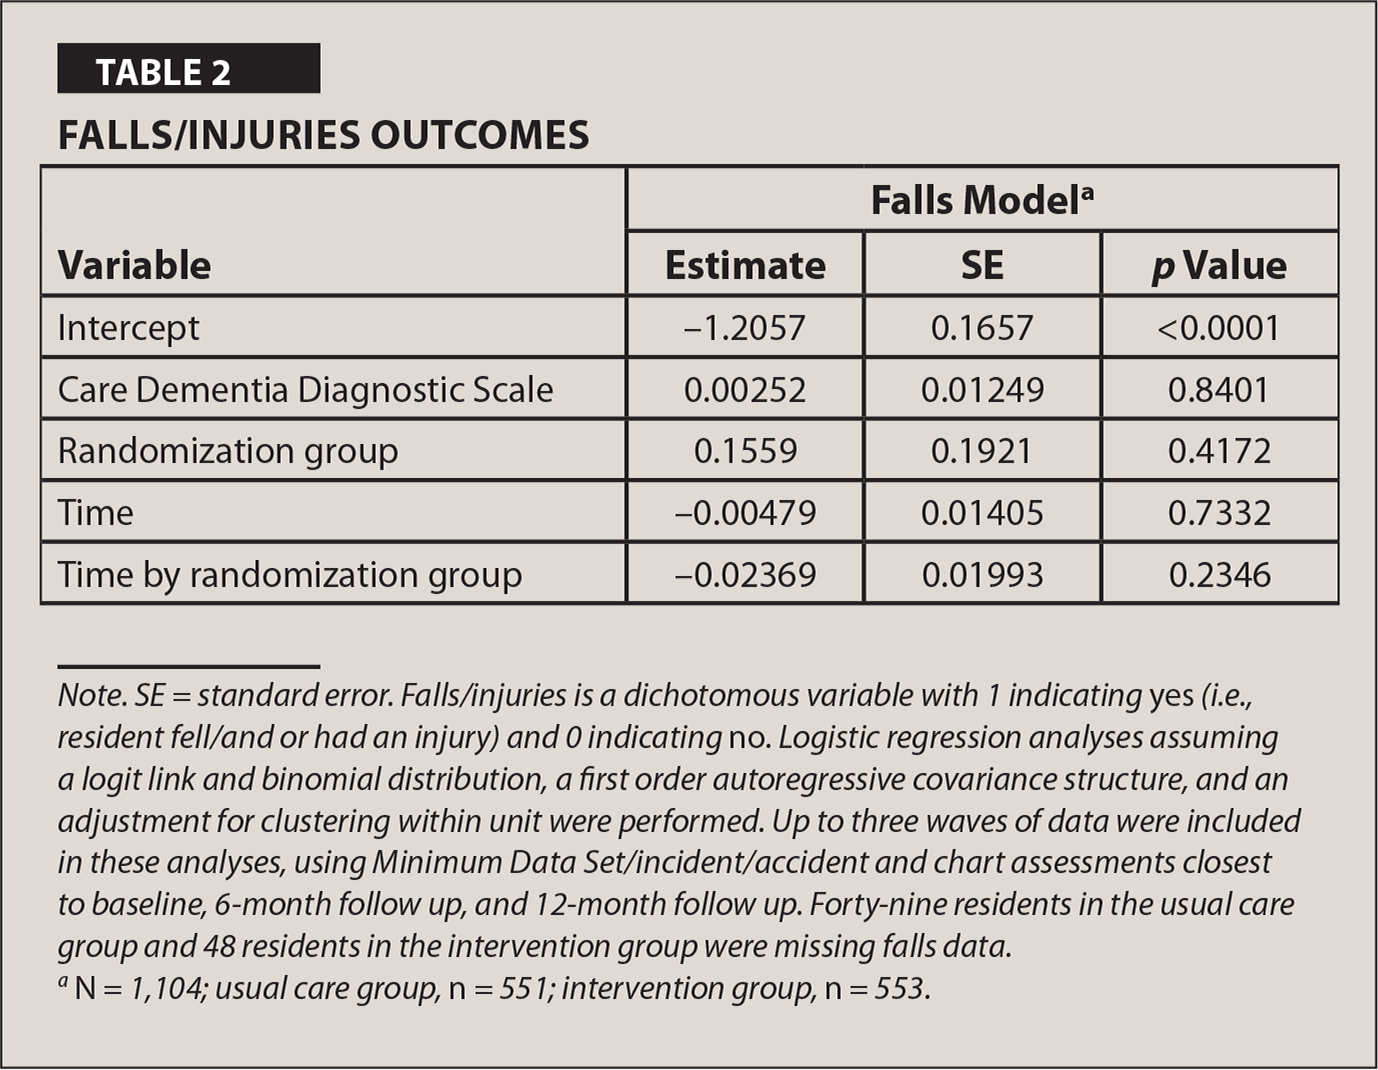 Falls/Injuries Outcomes